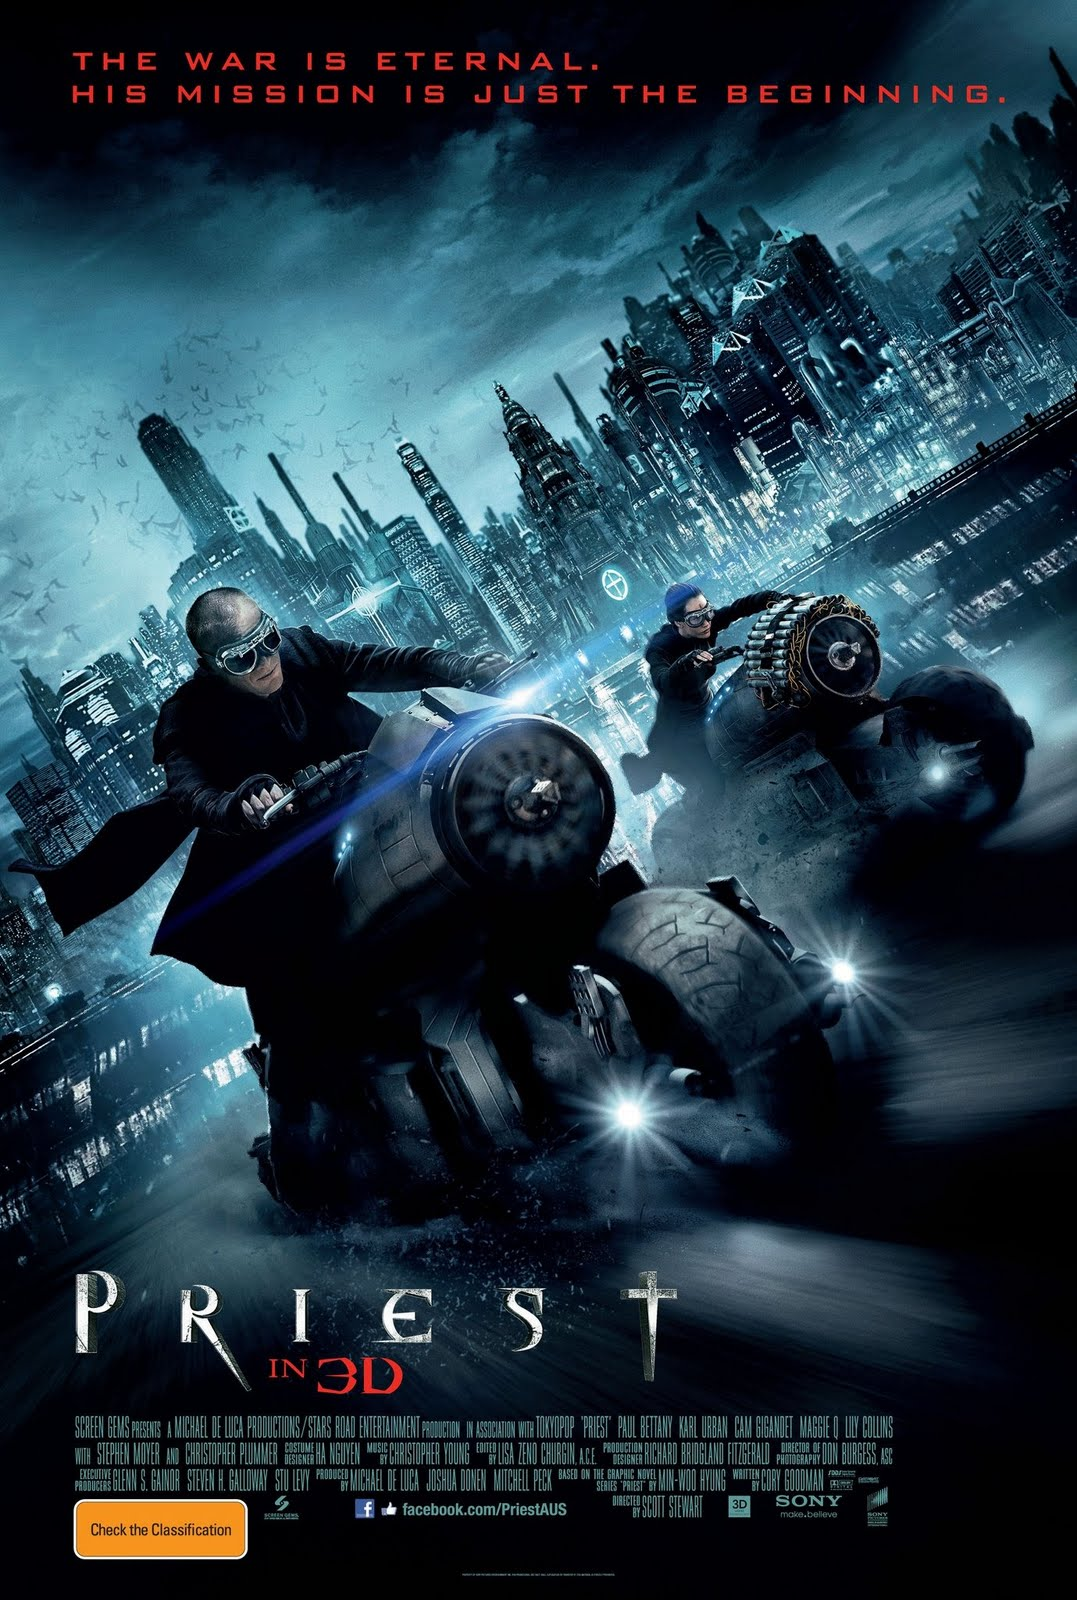 Paul Bettany got a lead role as the most badass priest ever! Pacific Rim 2013 Dvd Cover